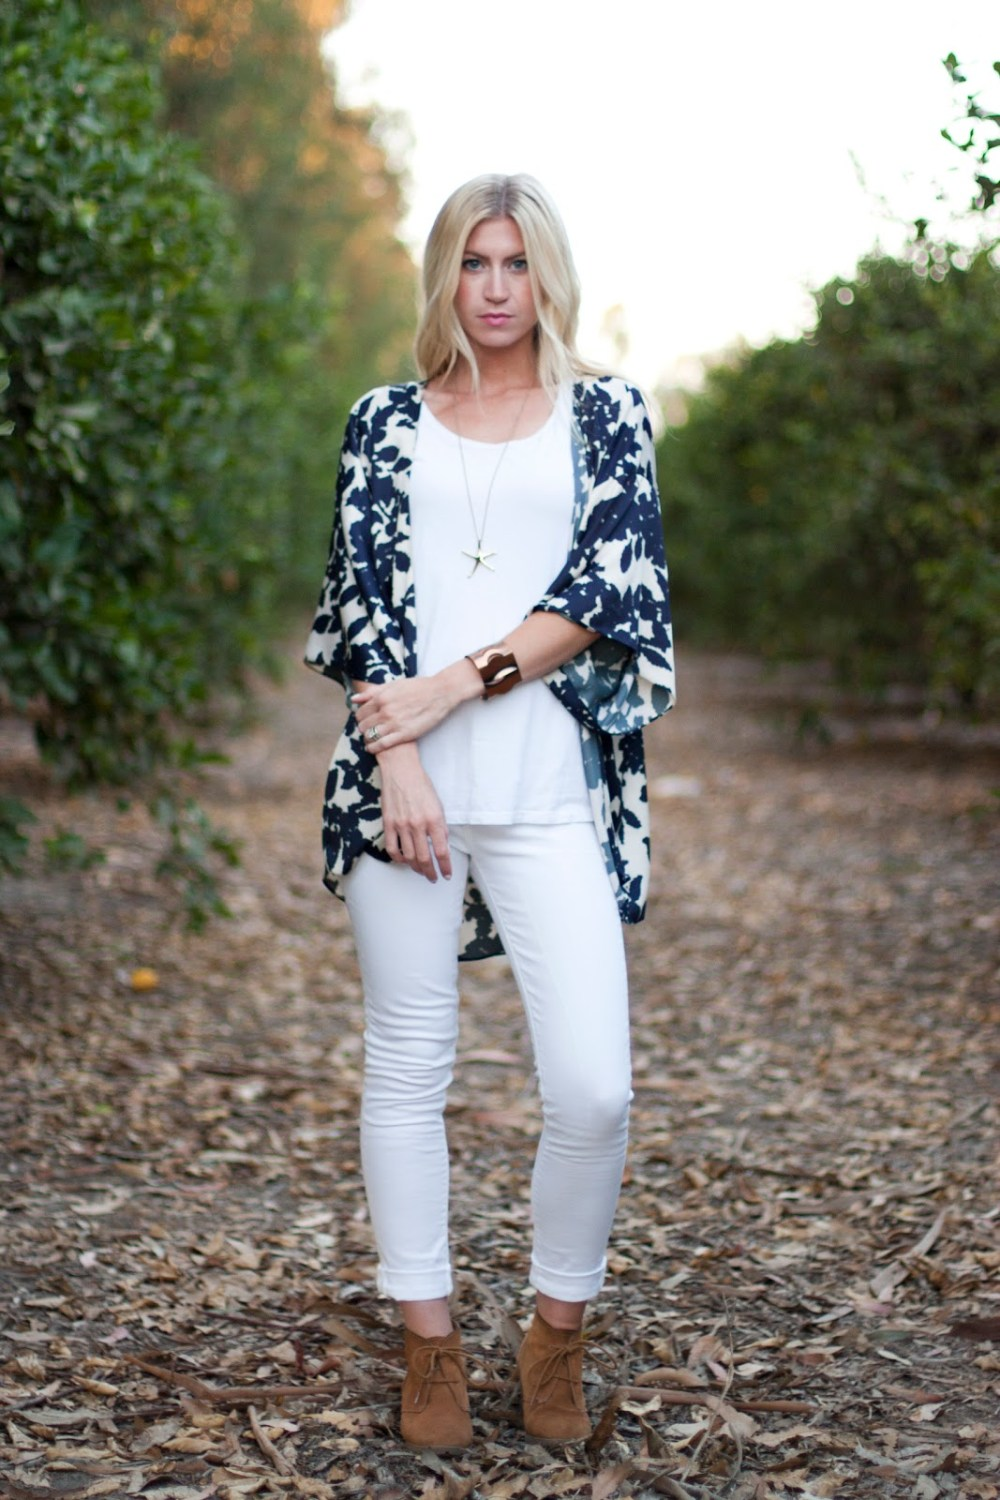 DIY Blue and White kimono over white top and white jeans, paired with tan fringe boots